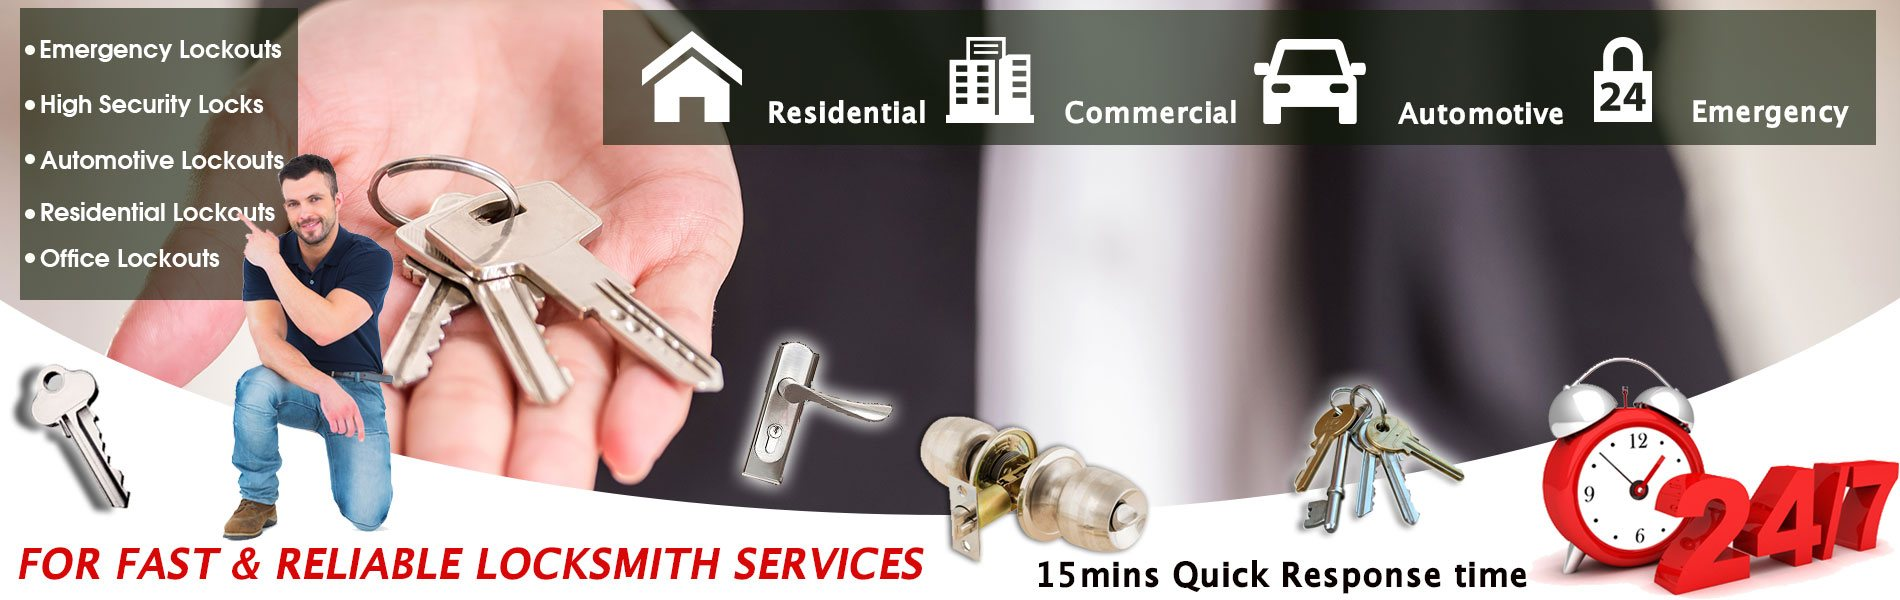 Village Locksmith Store Clearwater, FL 727-282-5671